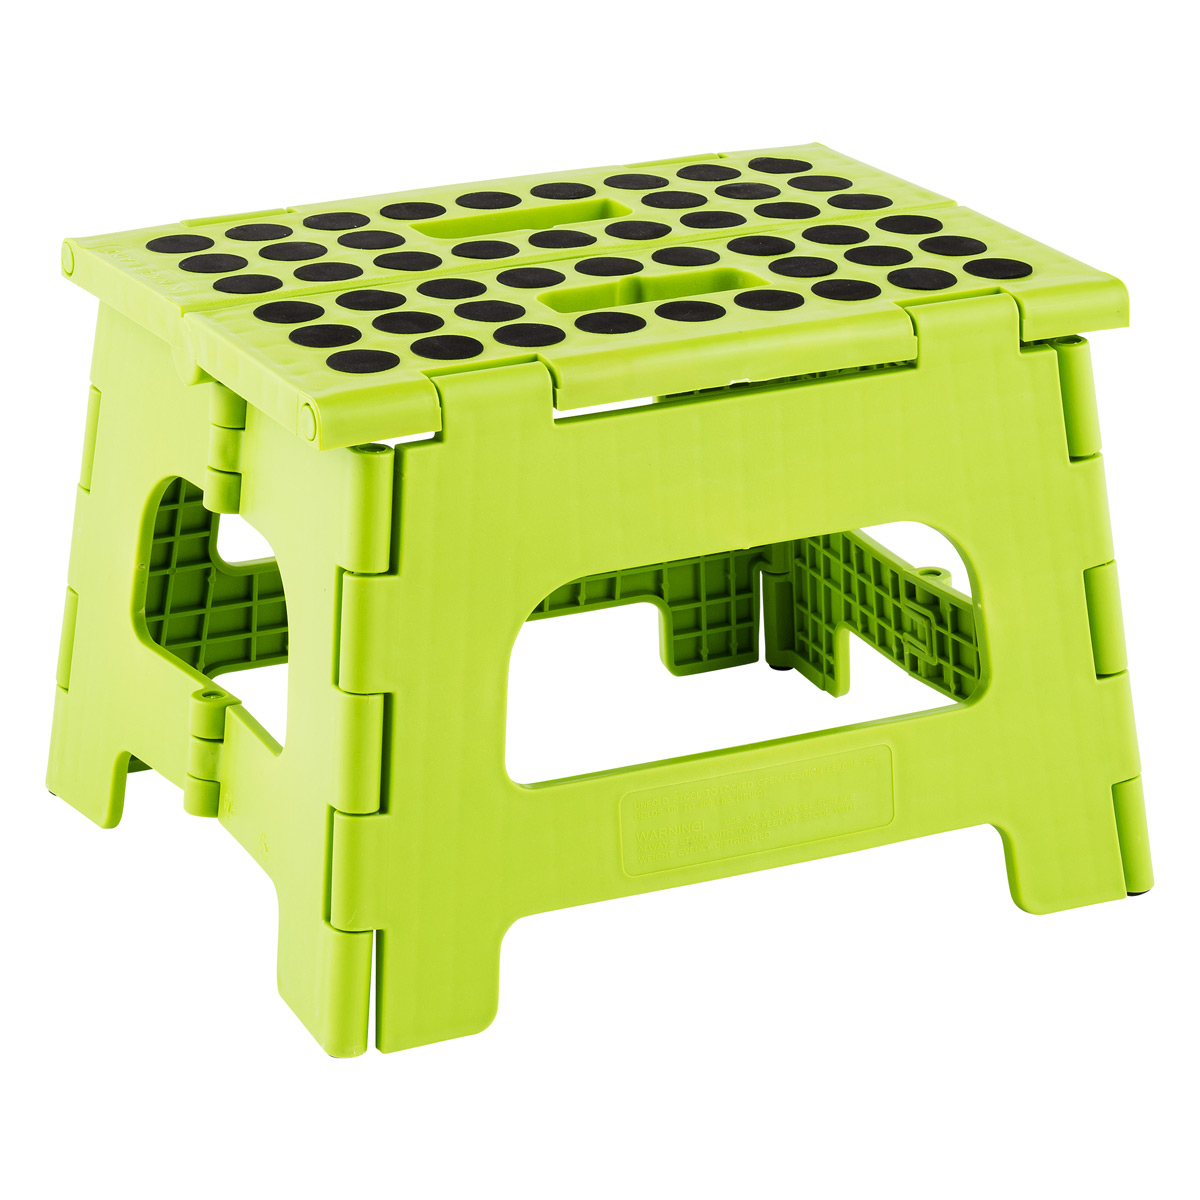 Lime Easy Folding Step Stool ...  sc 1 st  The Container Store & Lime Easy Folding Step Stool | The Container Store islam-shia.org